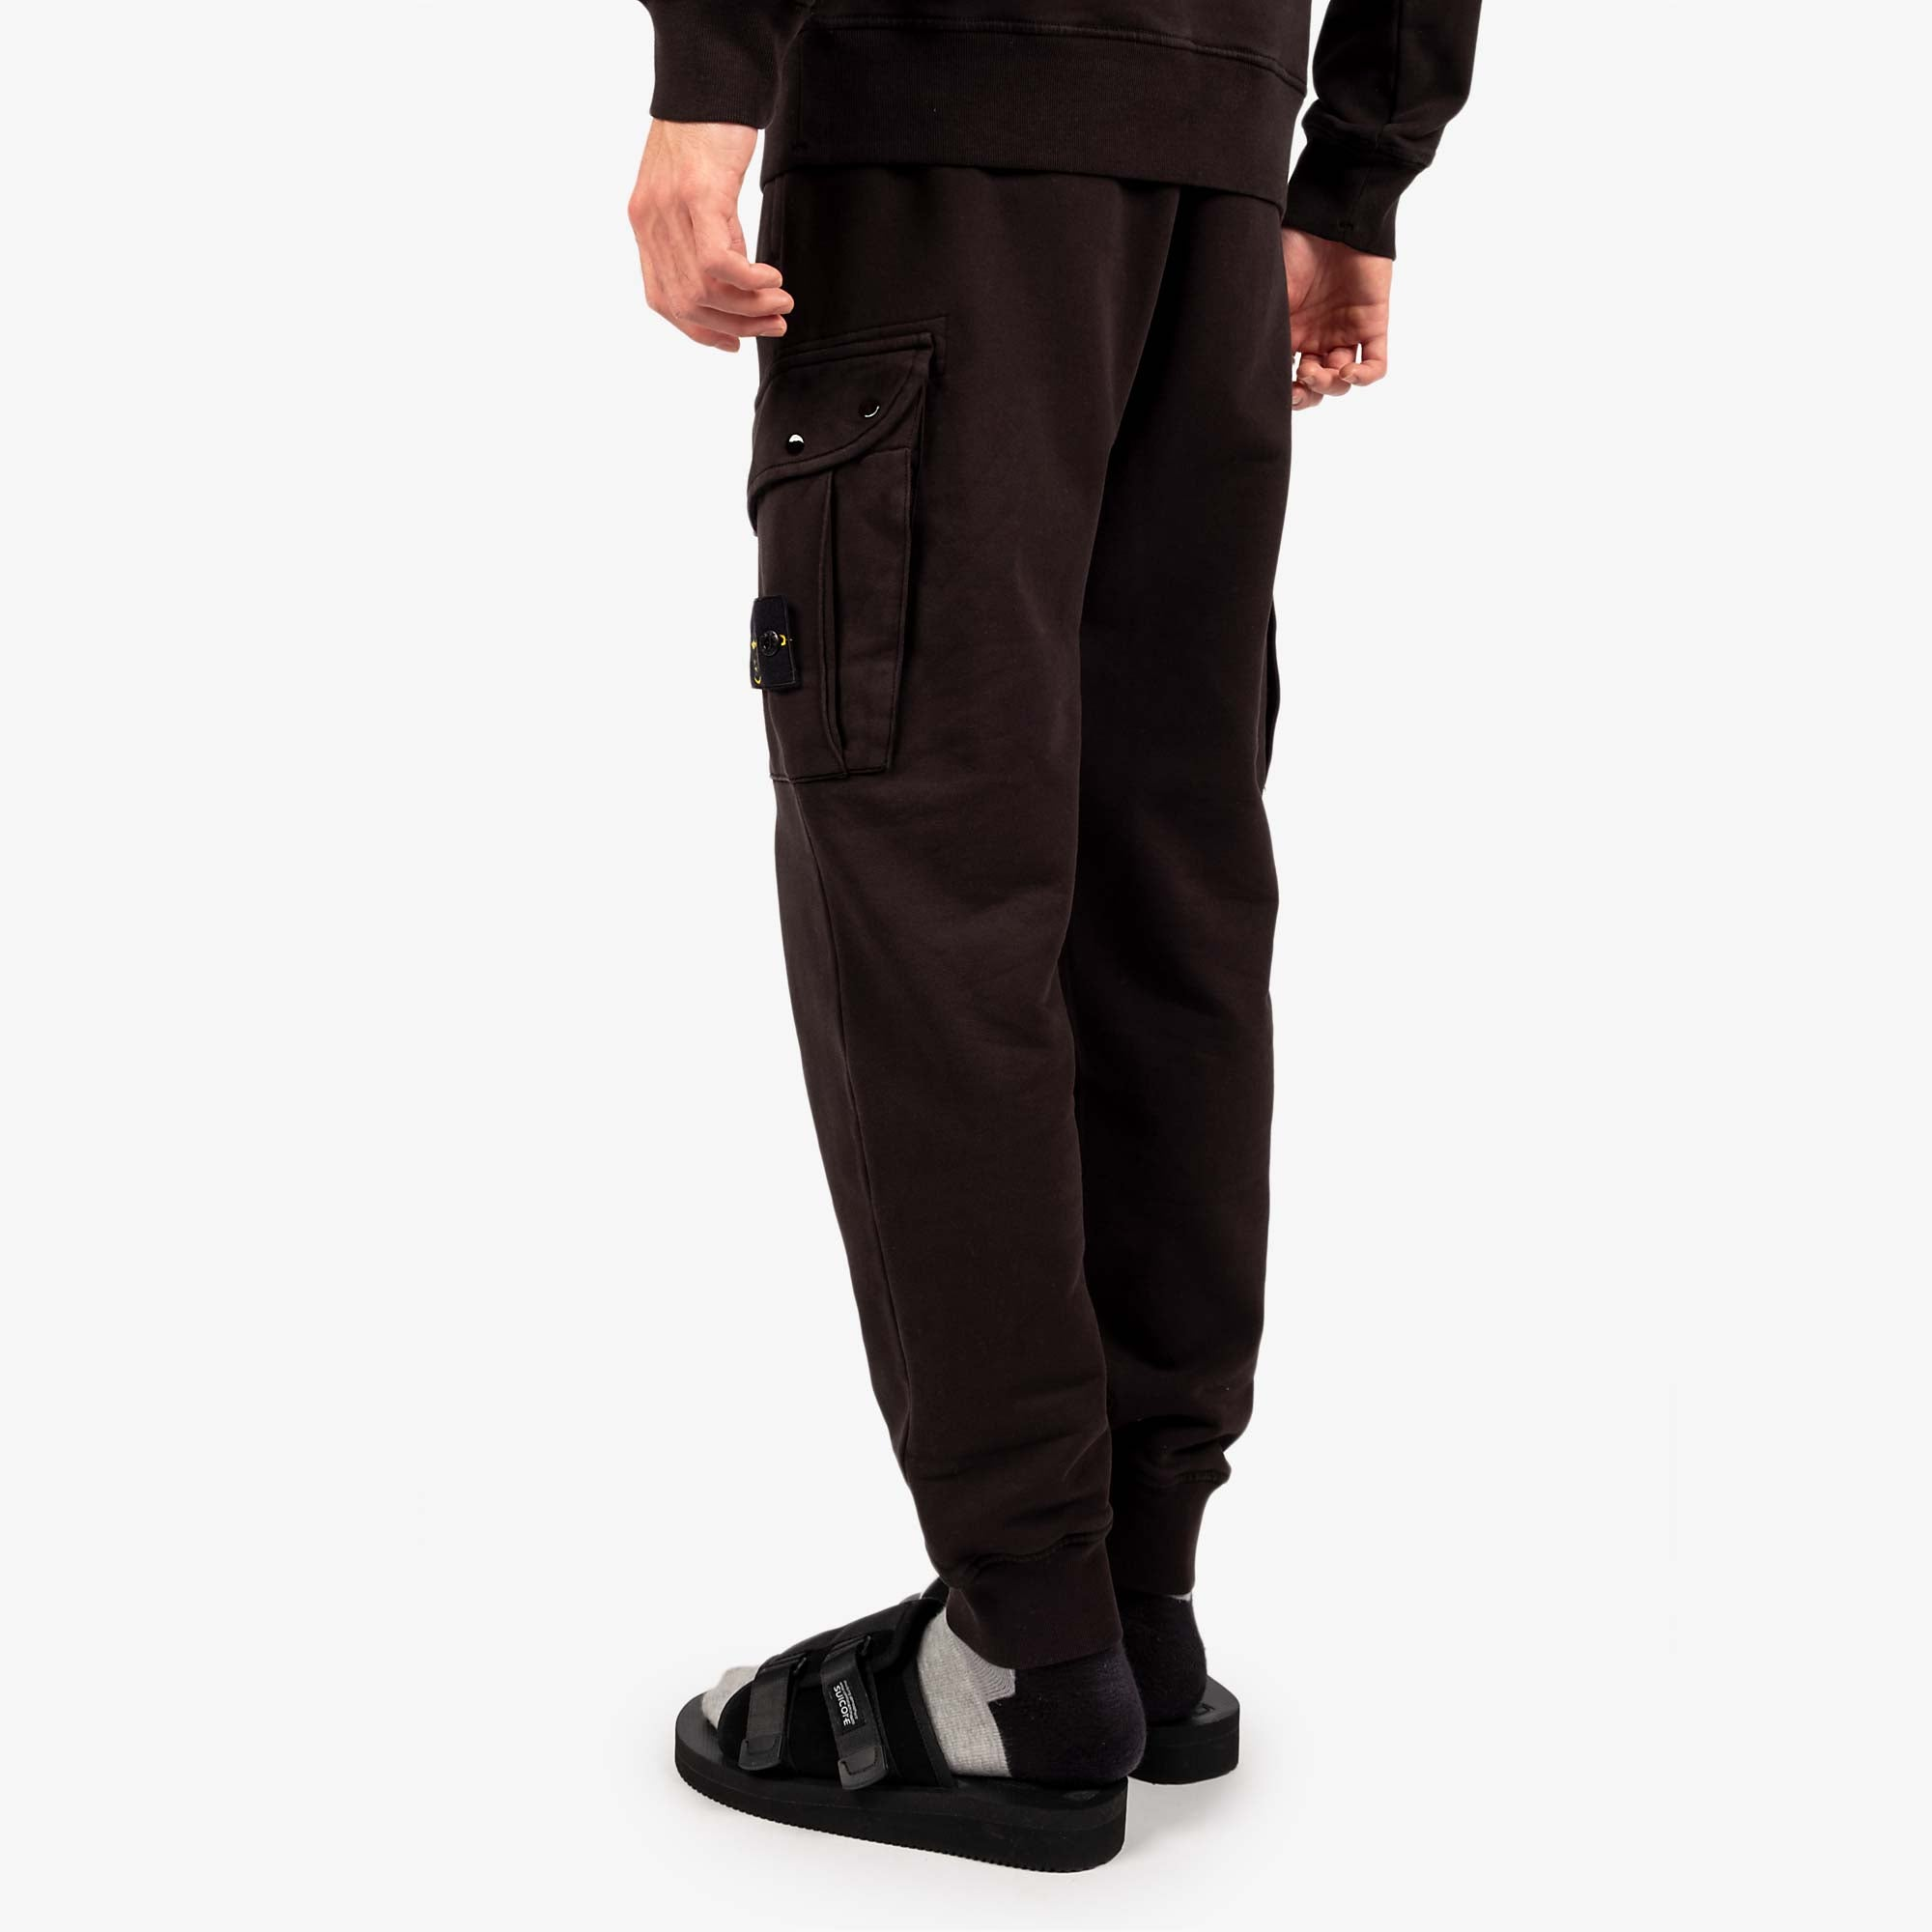 Stone Island Fleece Pants 741565251 - Black 8